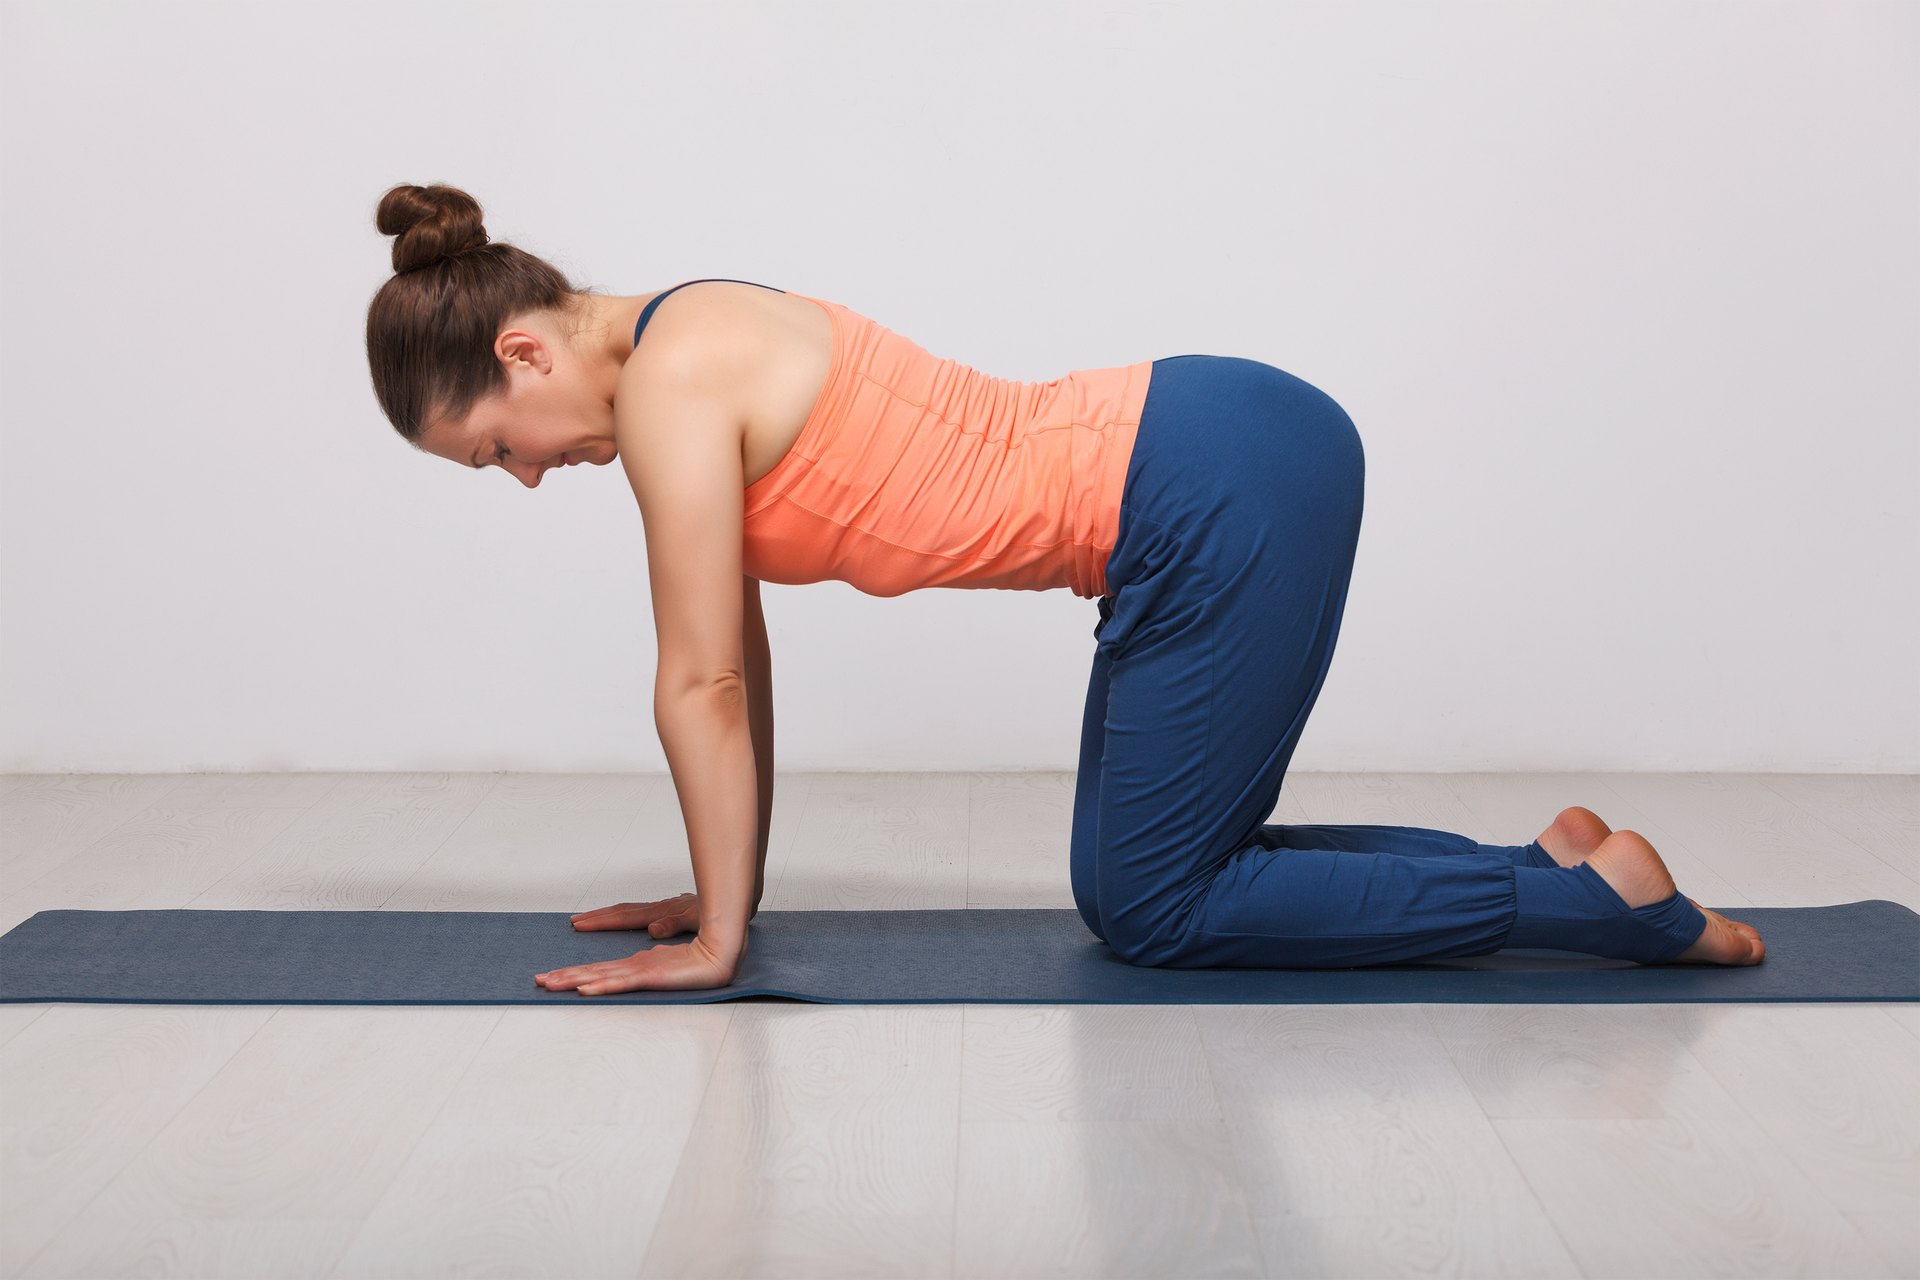 How To Stretch The L3 Of The Lumbar Spine Livestrong